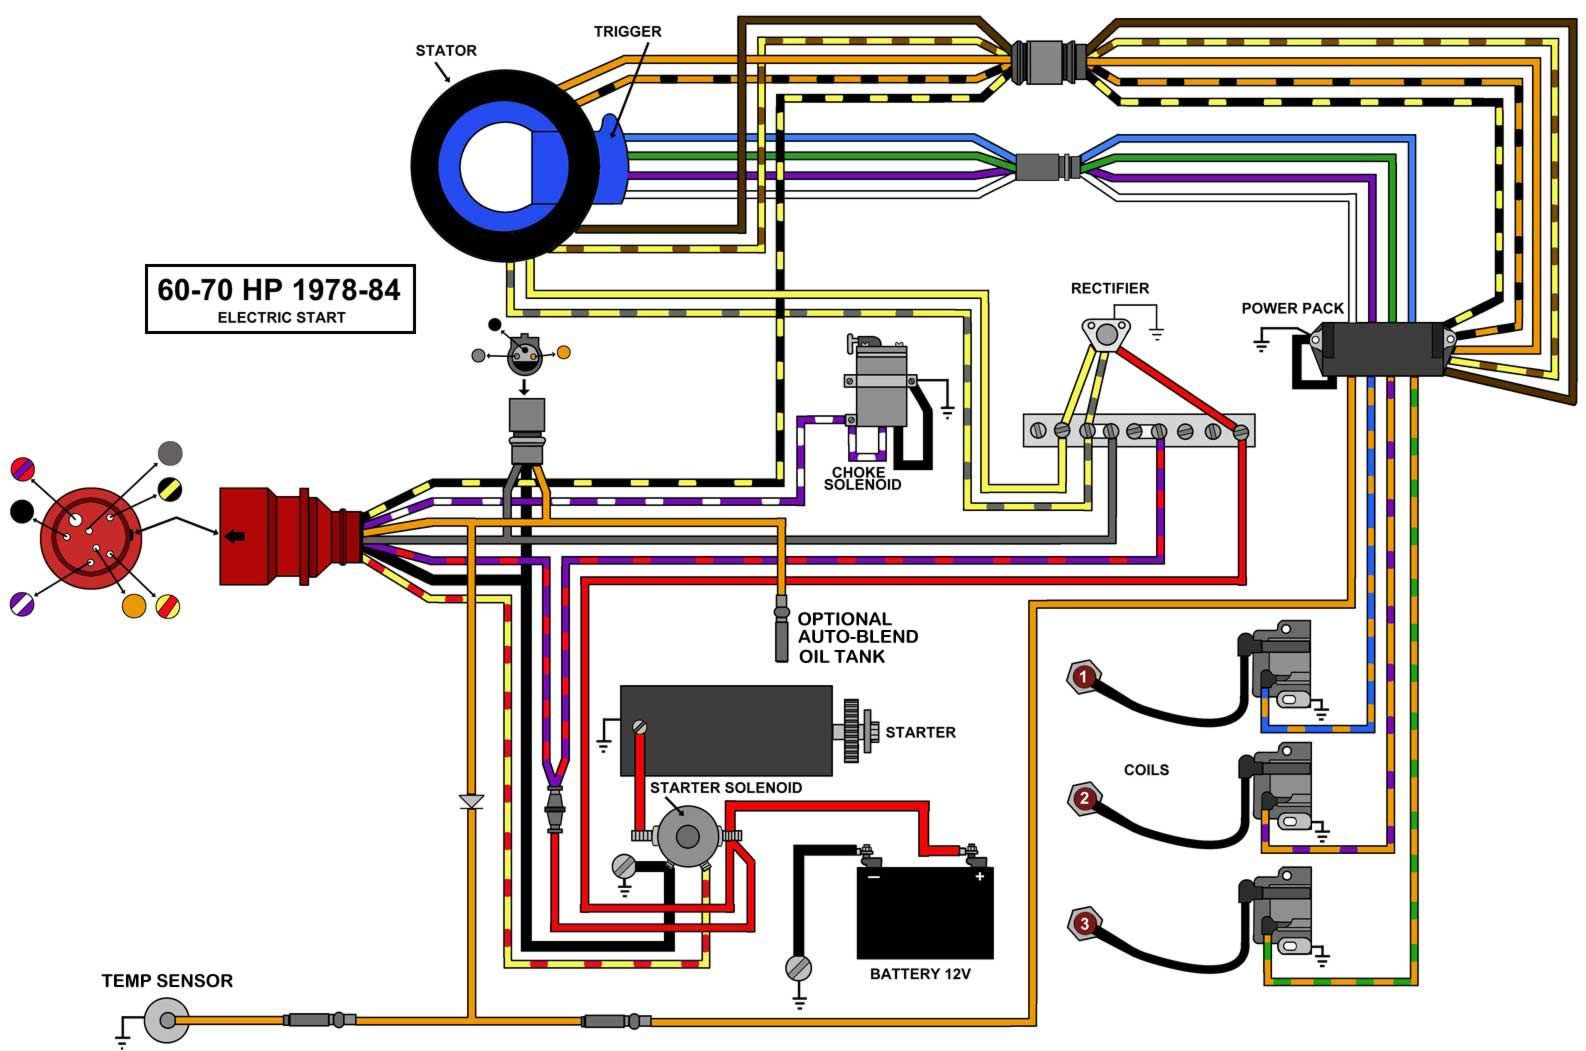 hight resolution of image result for 70 hp johnson 1988 wiring to tachometer etc diagram johnson controls lube oil control wiring diagram johnson control wiring diagram